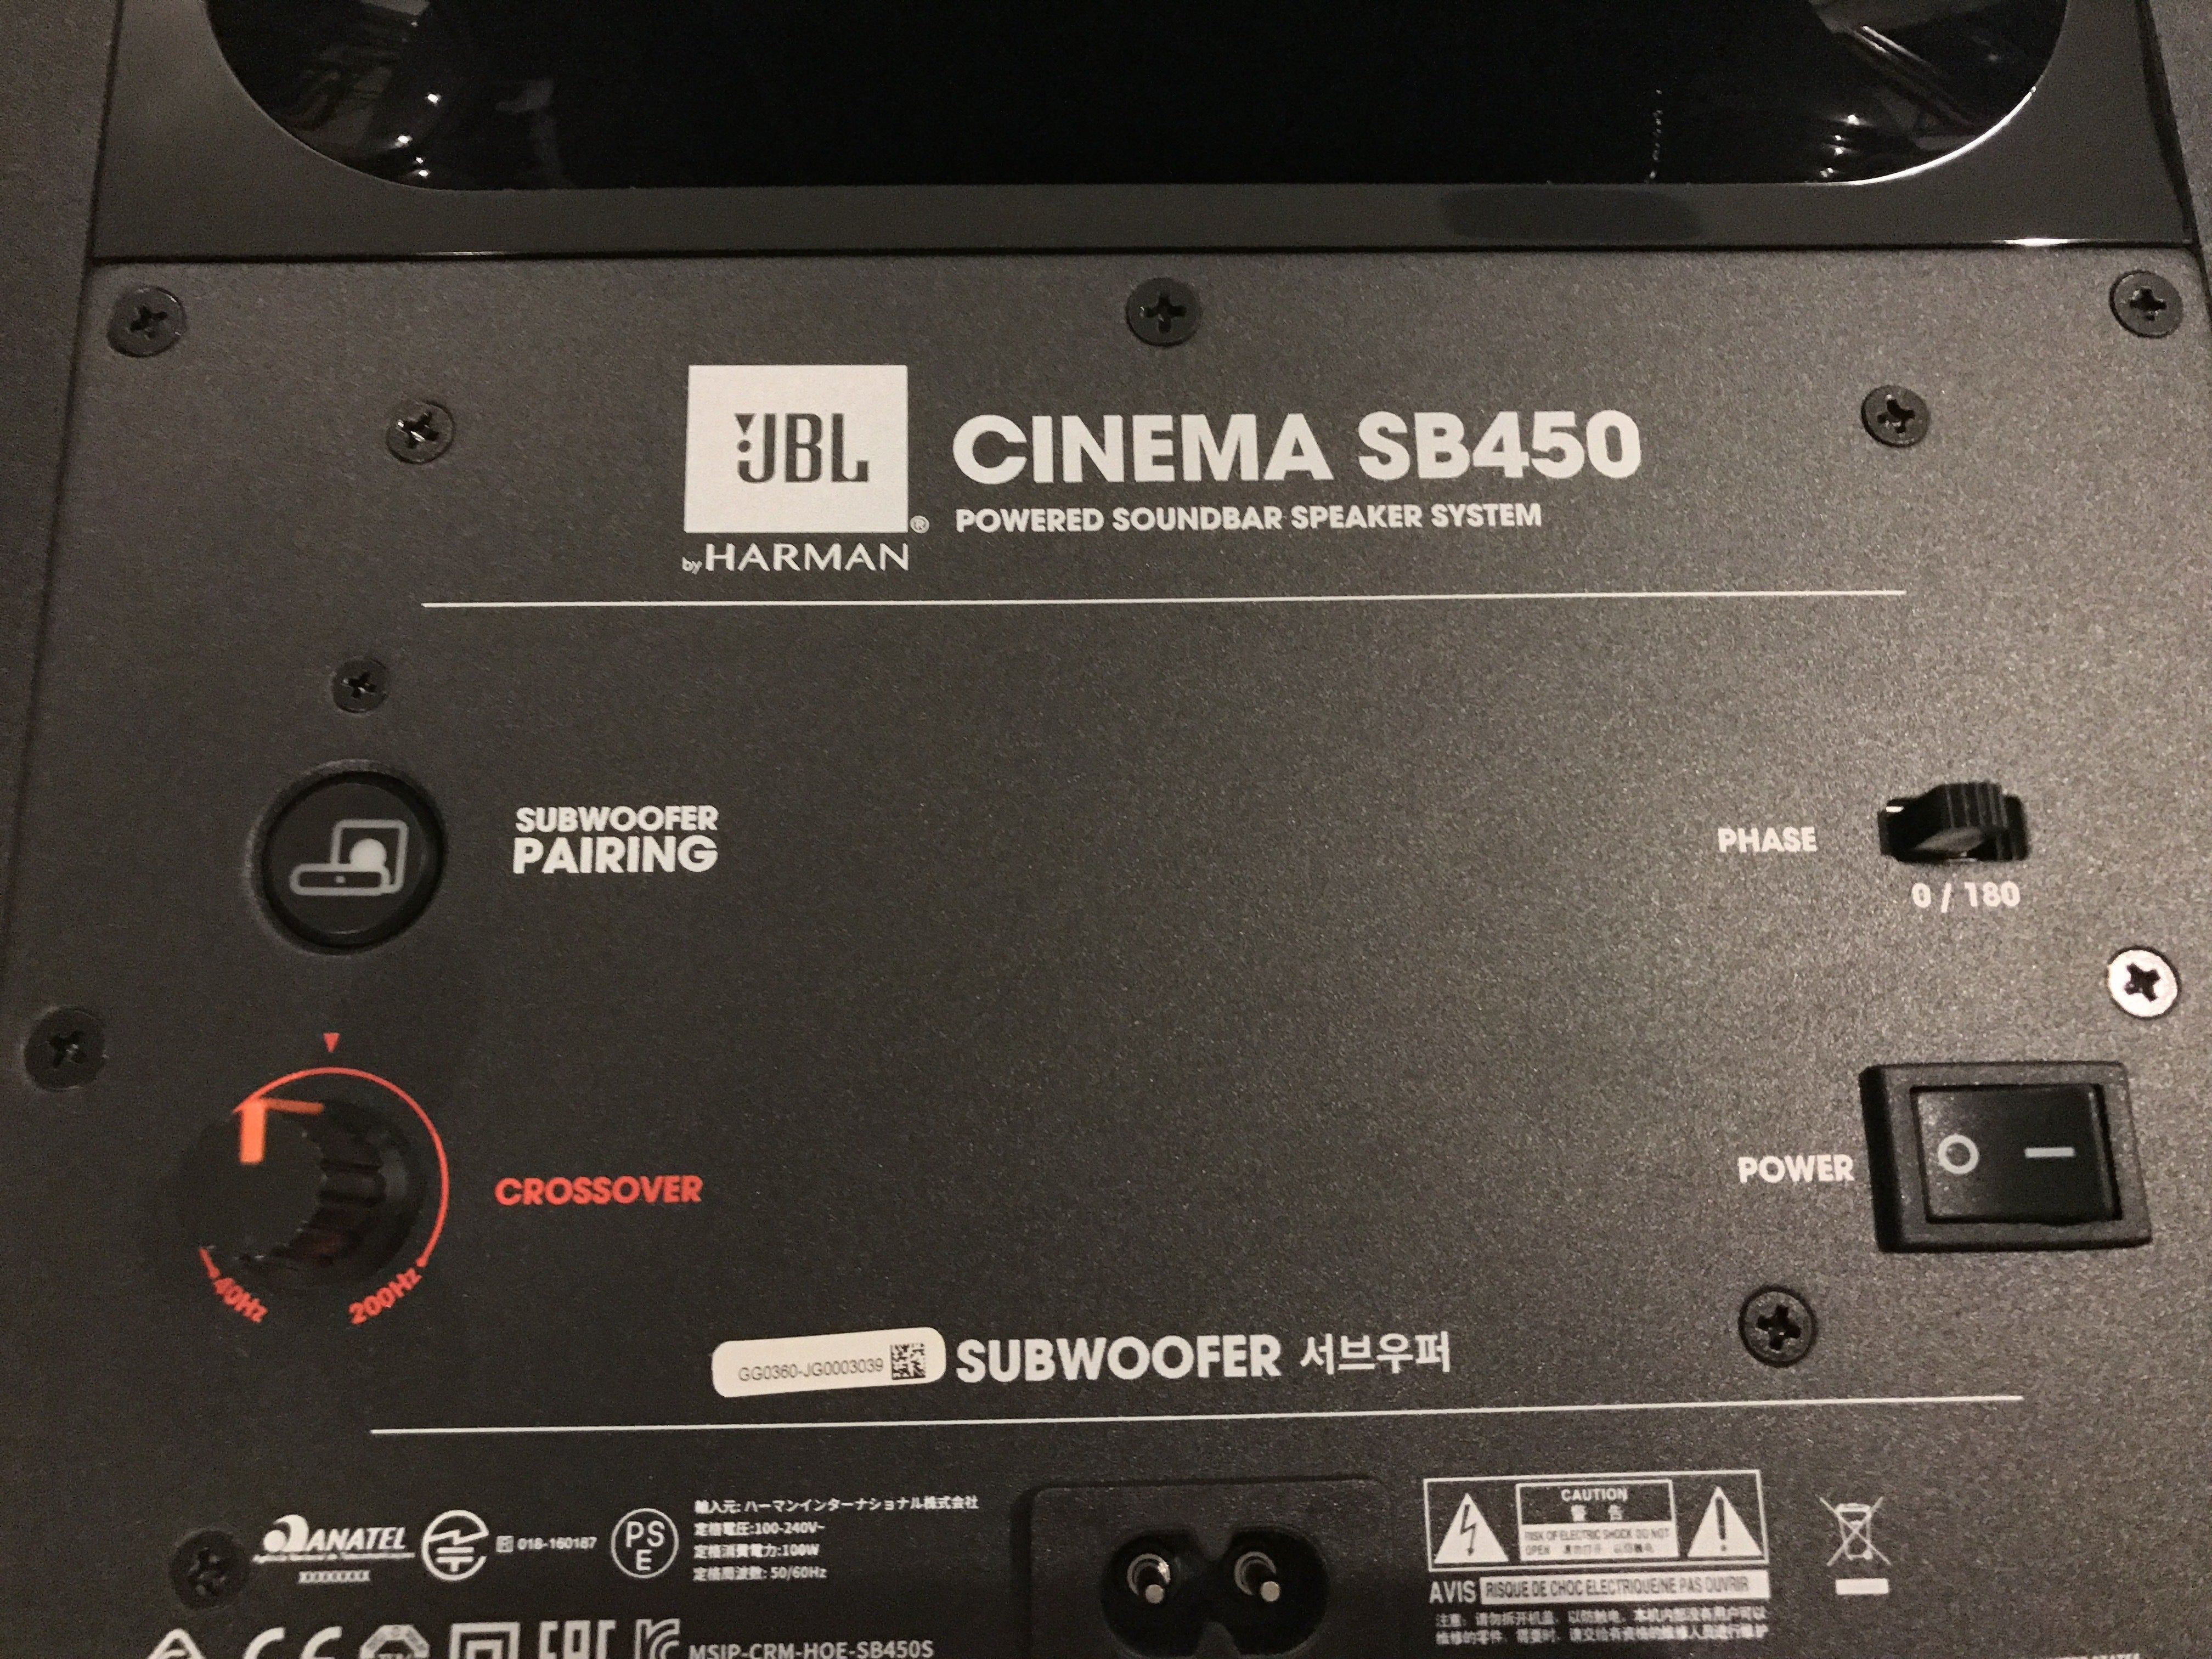 Jbl Cinema Sb 450 Soundbar Review This Speaker Is Made For Movie Tone Control Include Subwoofer Out Sb450 Sub